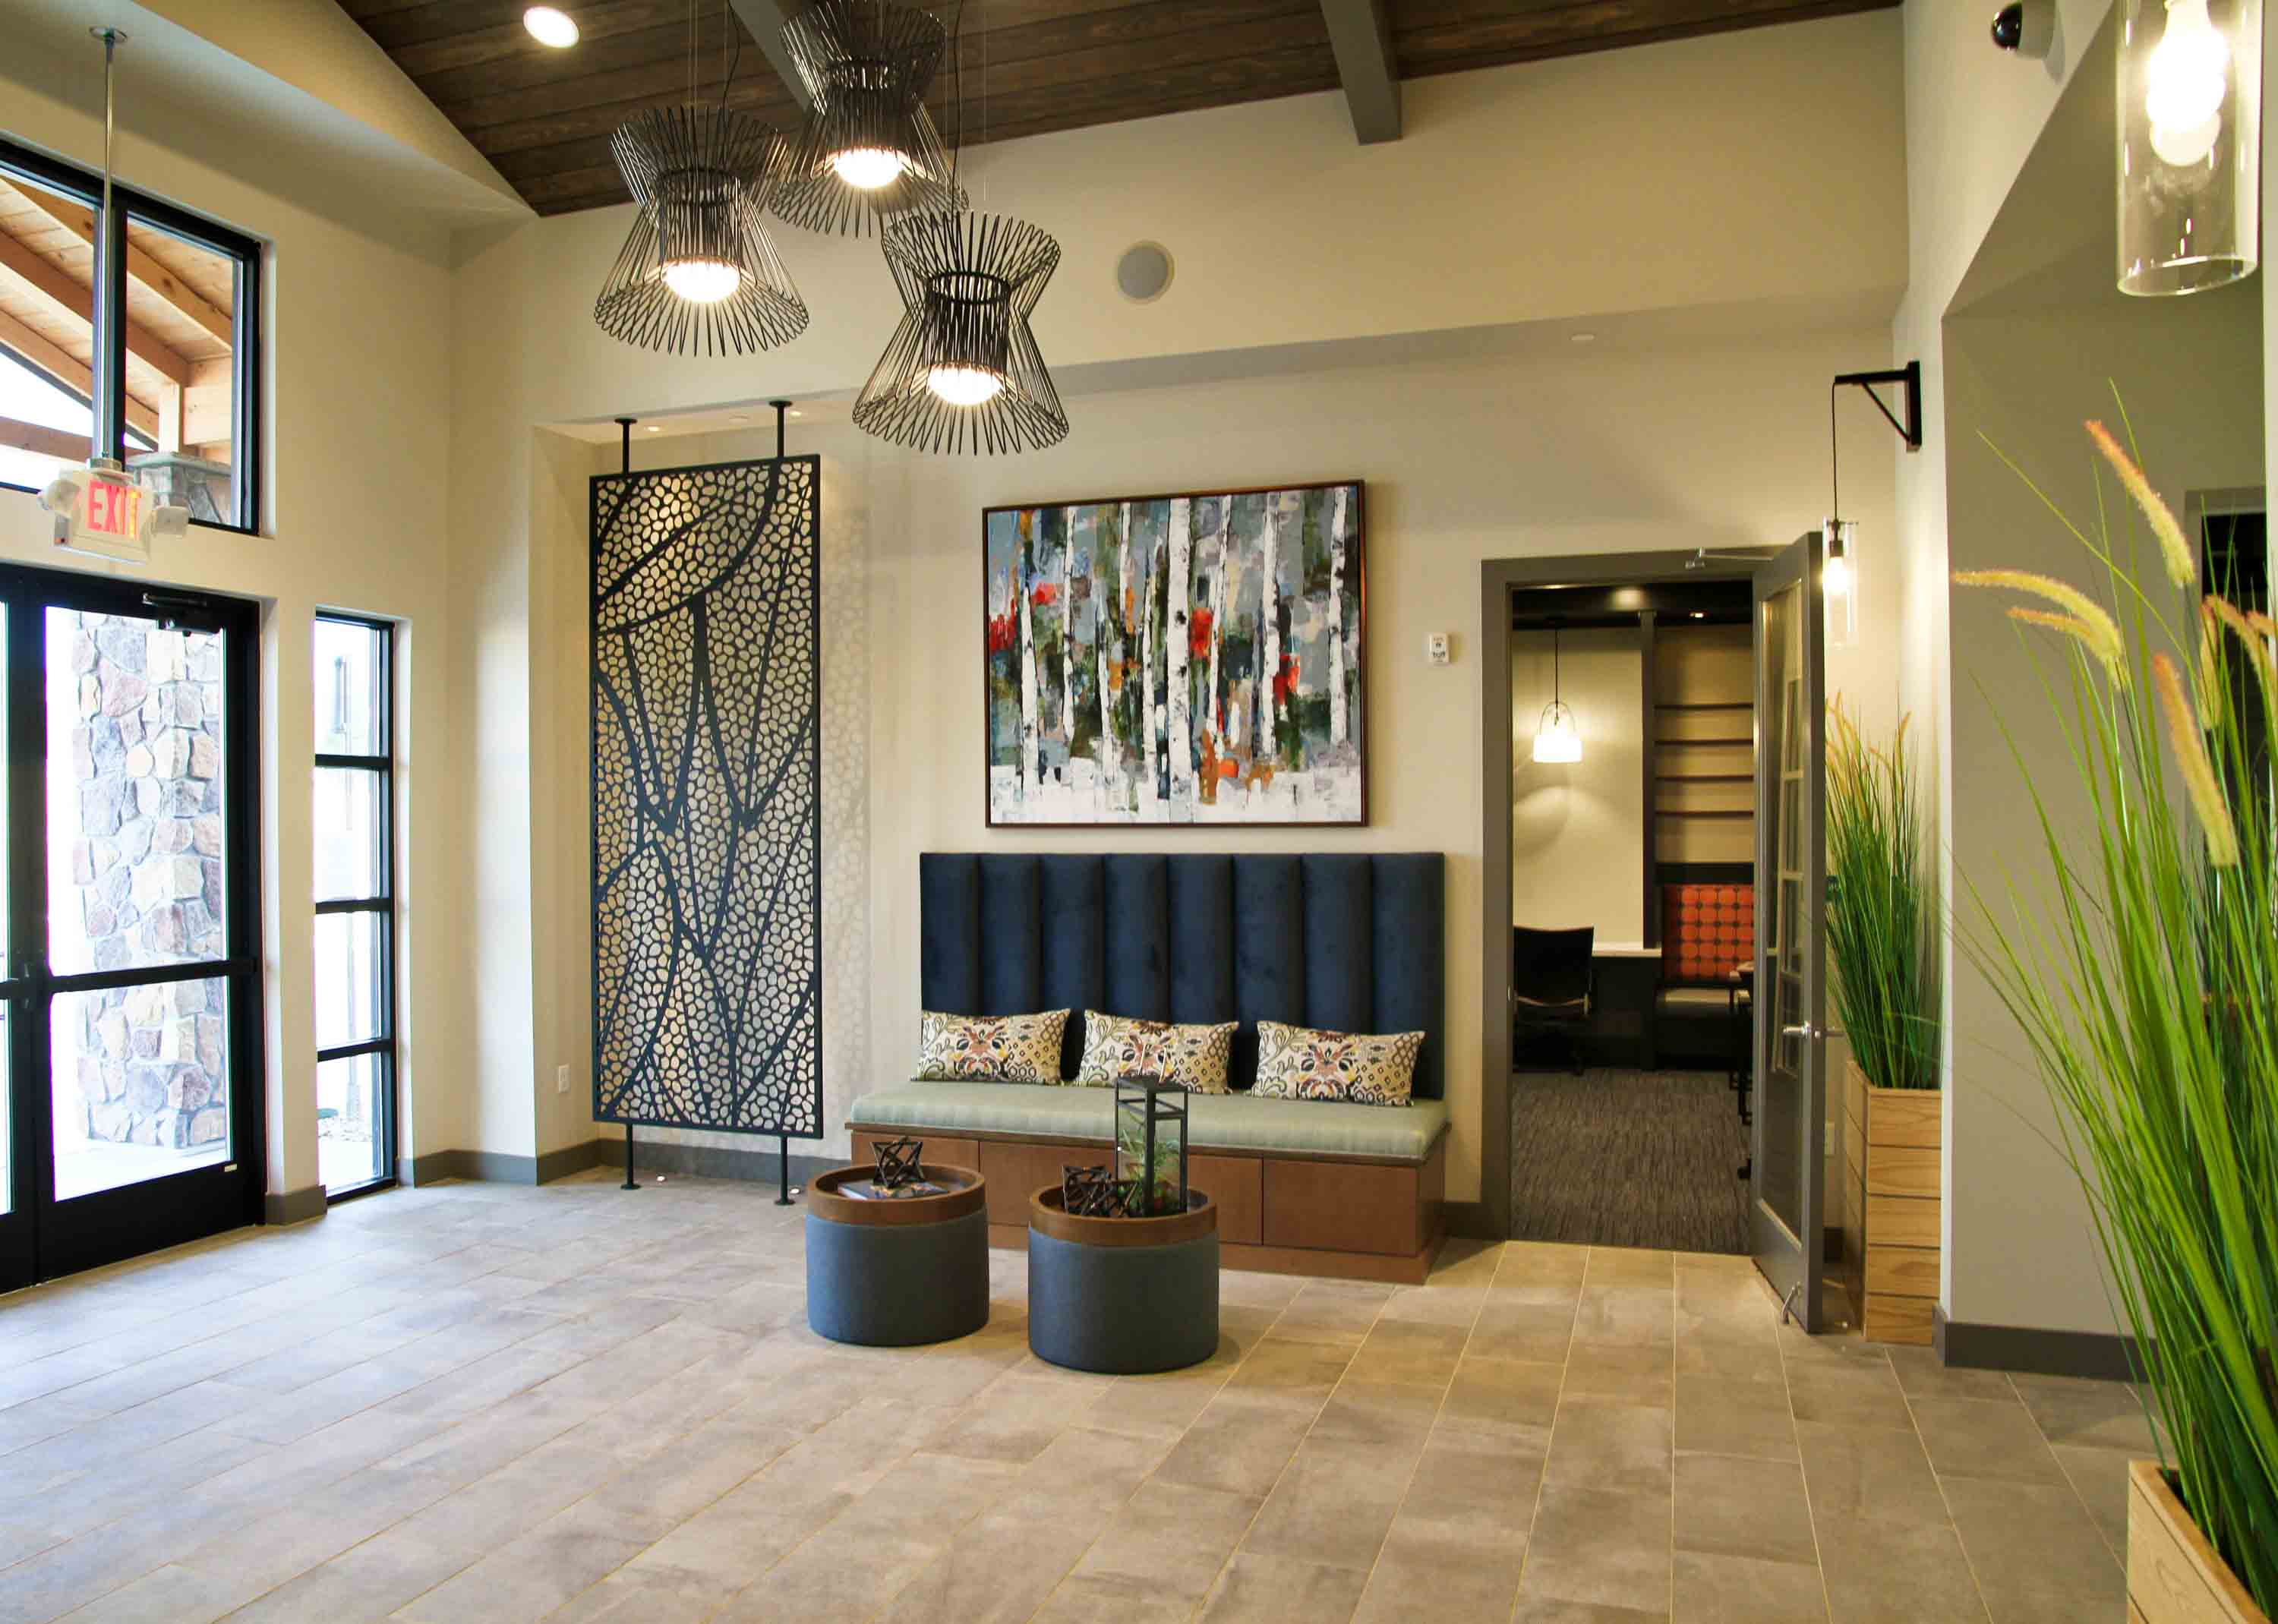 Lobby area with plush bench seat, round ottomans with terrarium, metal wall decor, and modern chandelier.